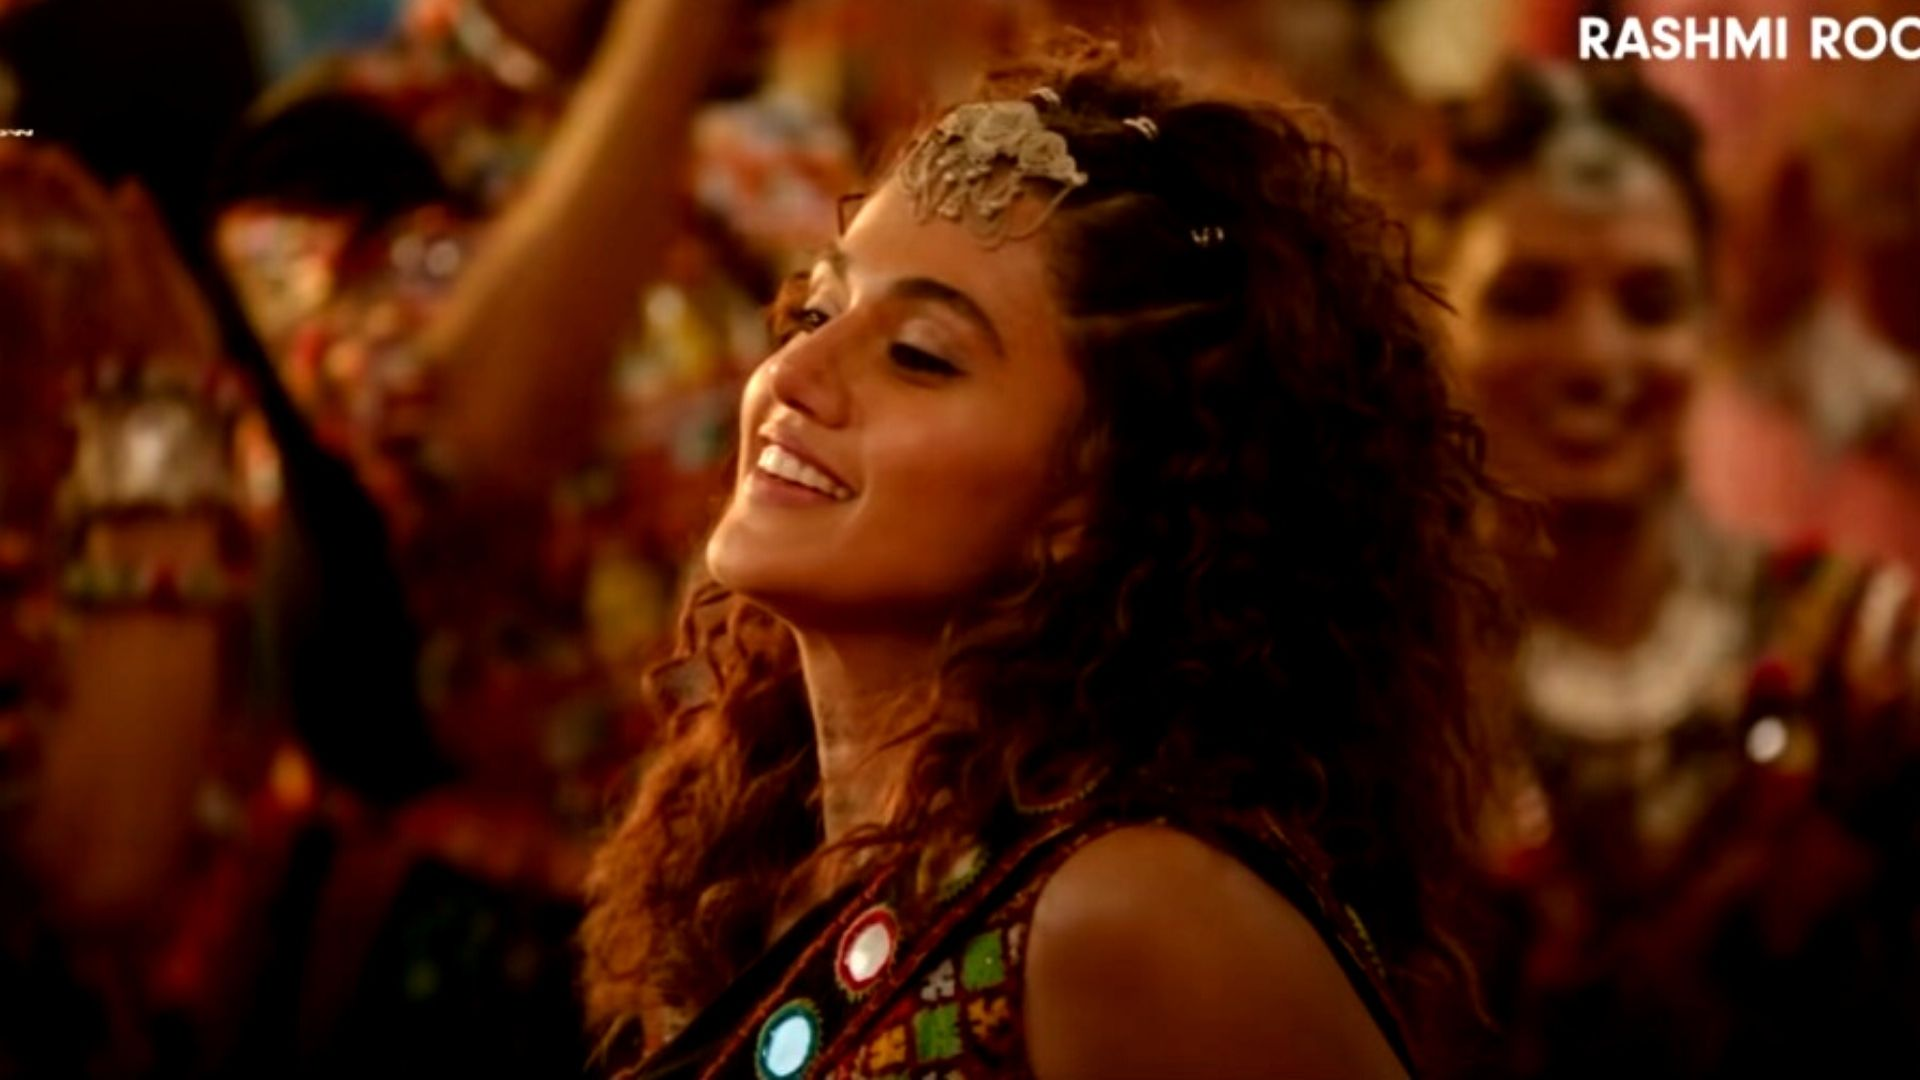 Rashmi Rocket Ghani Cool Chori Song Teaser: Get Ready To Groove With Taapsee Pannu's Latest Navratri Track; Song Out Tomorrow